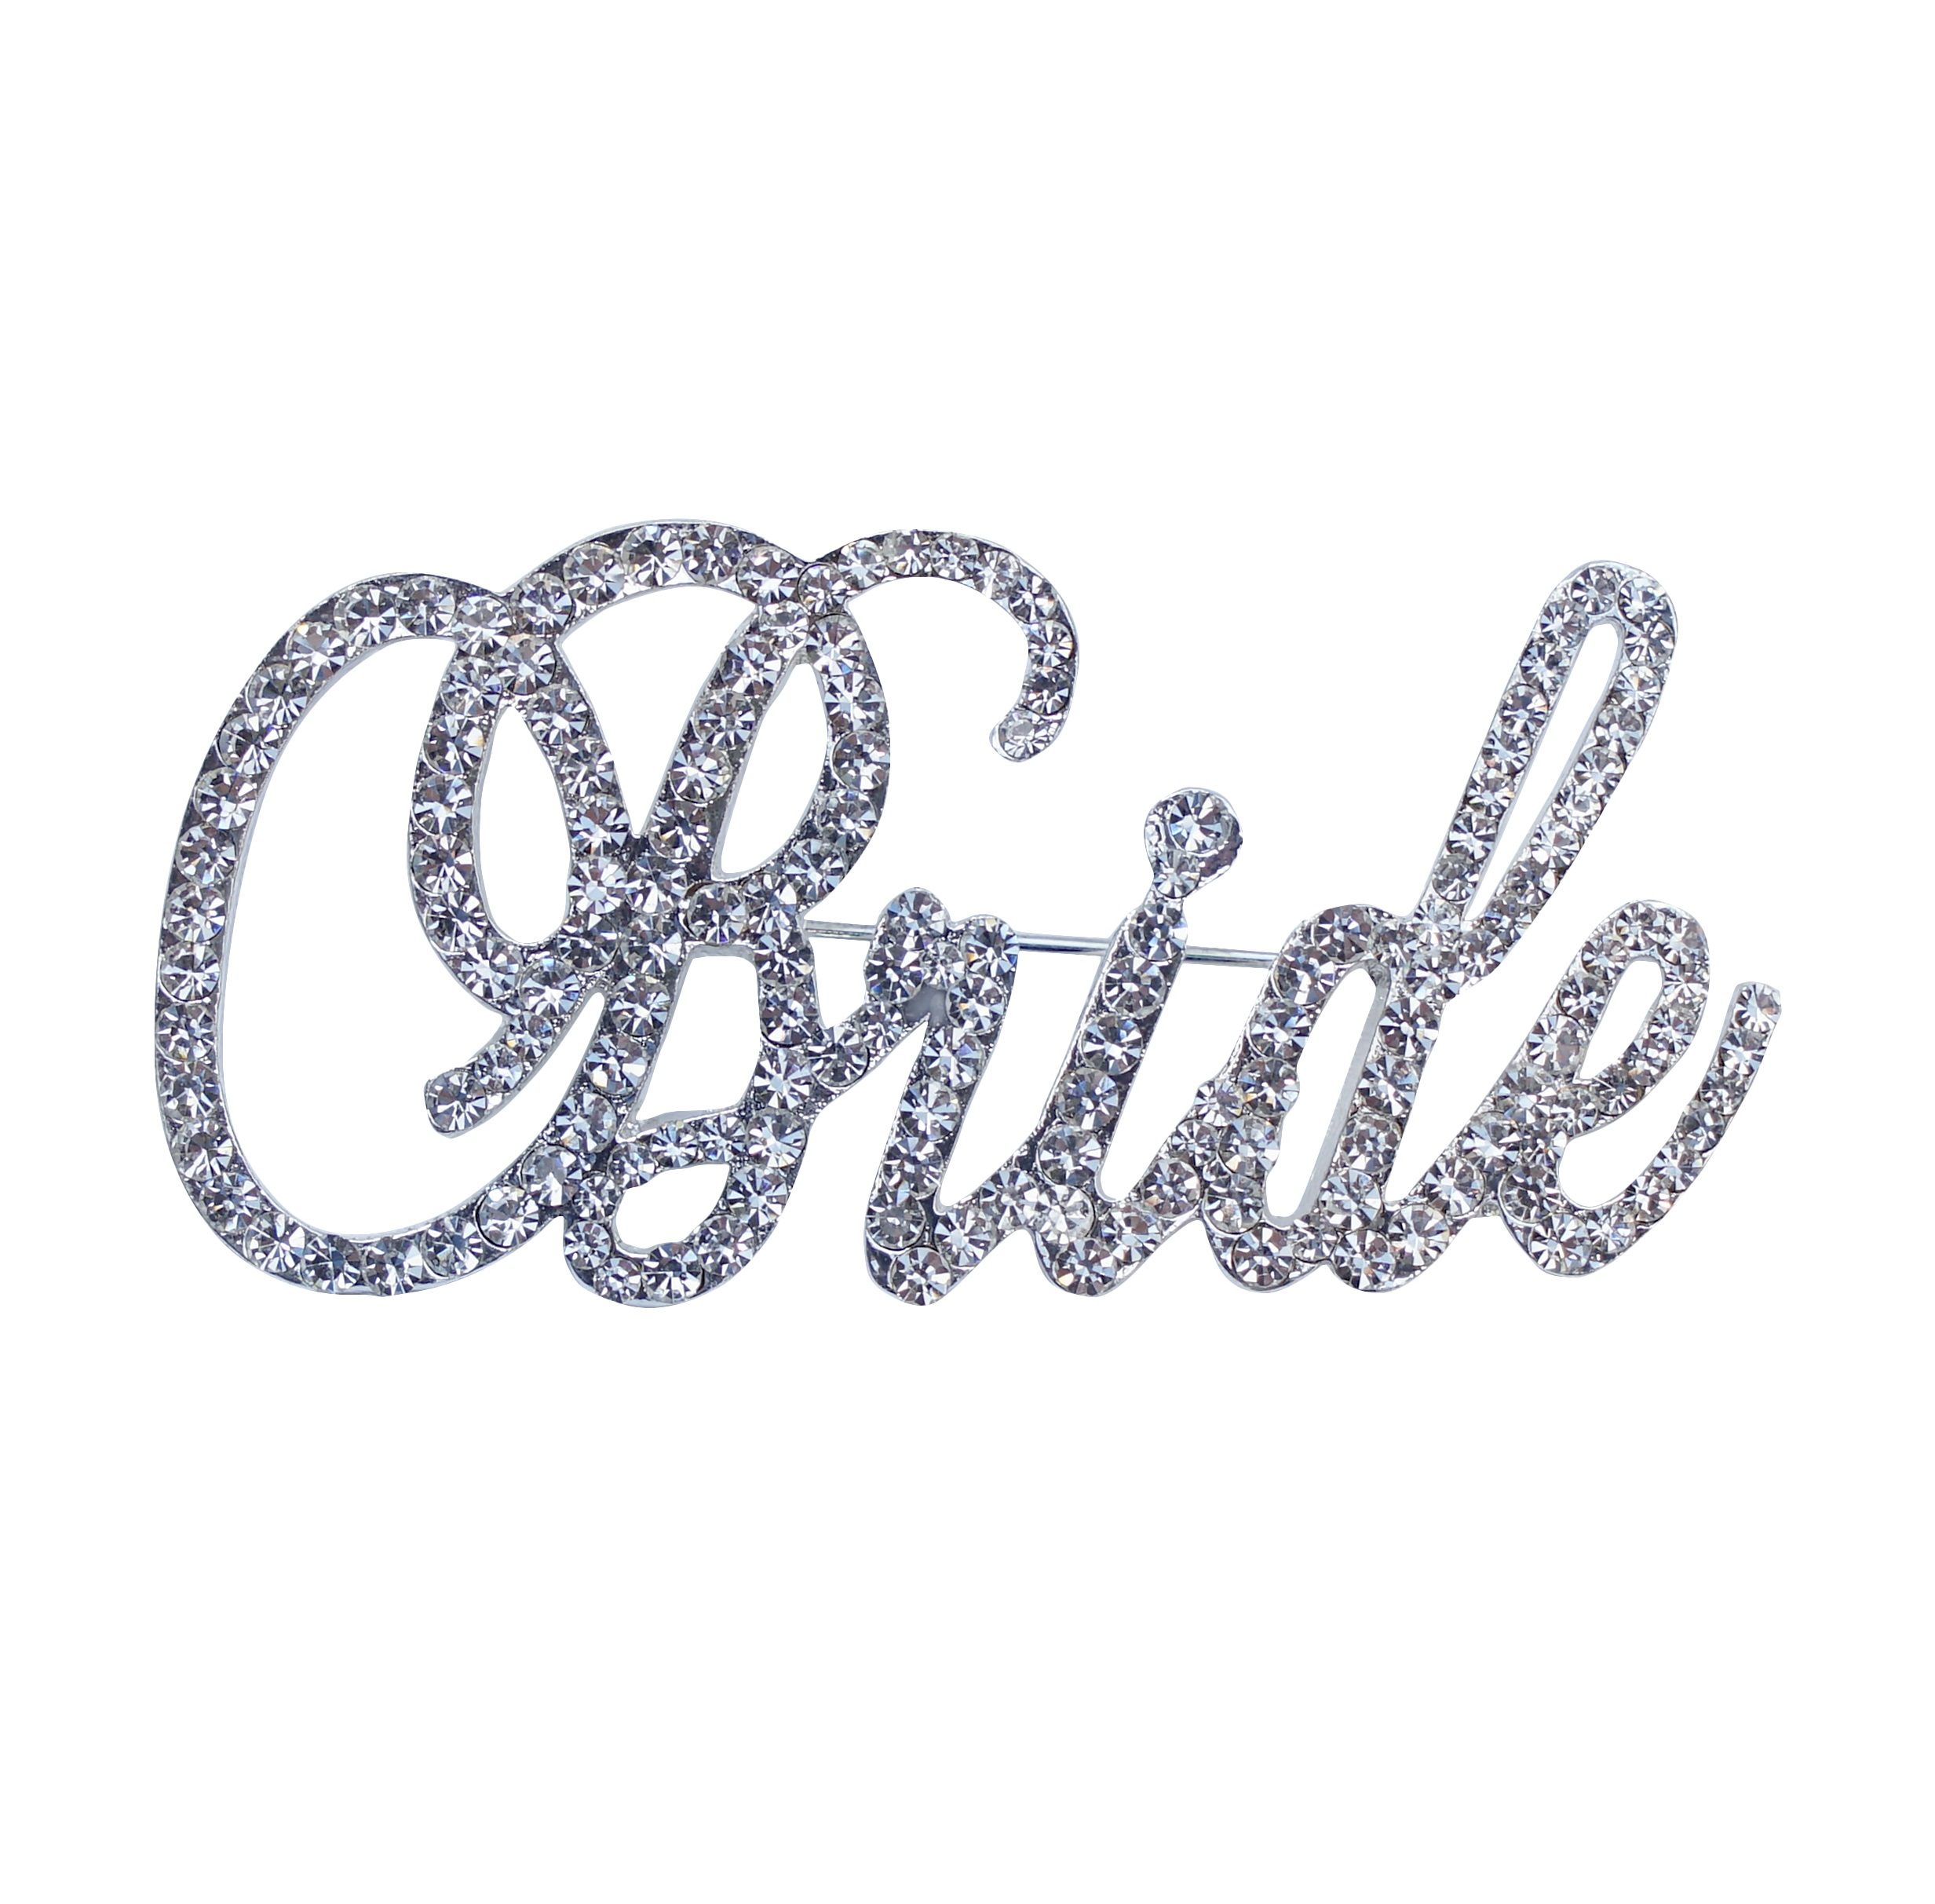 Unik Occasions Bride Rhinestone Pin In Silver